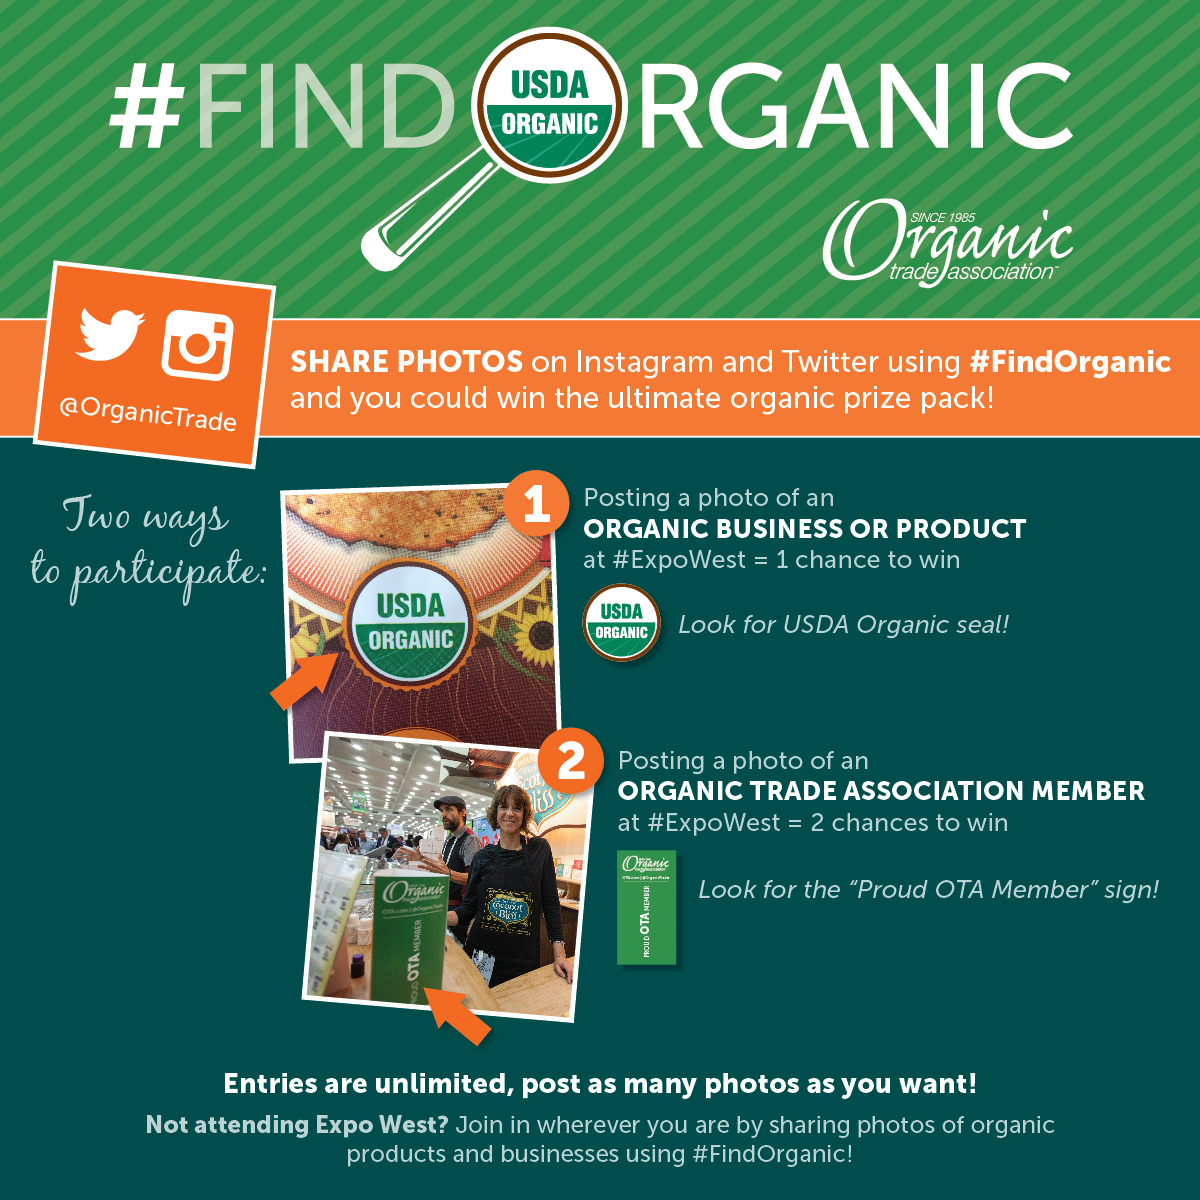 #FindOrganic and Expo West